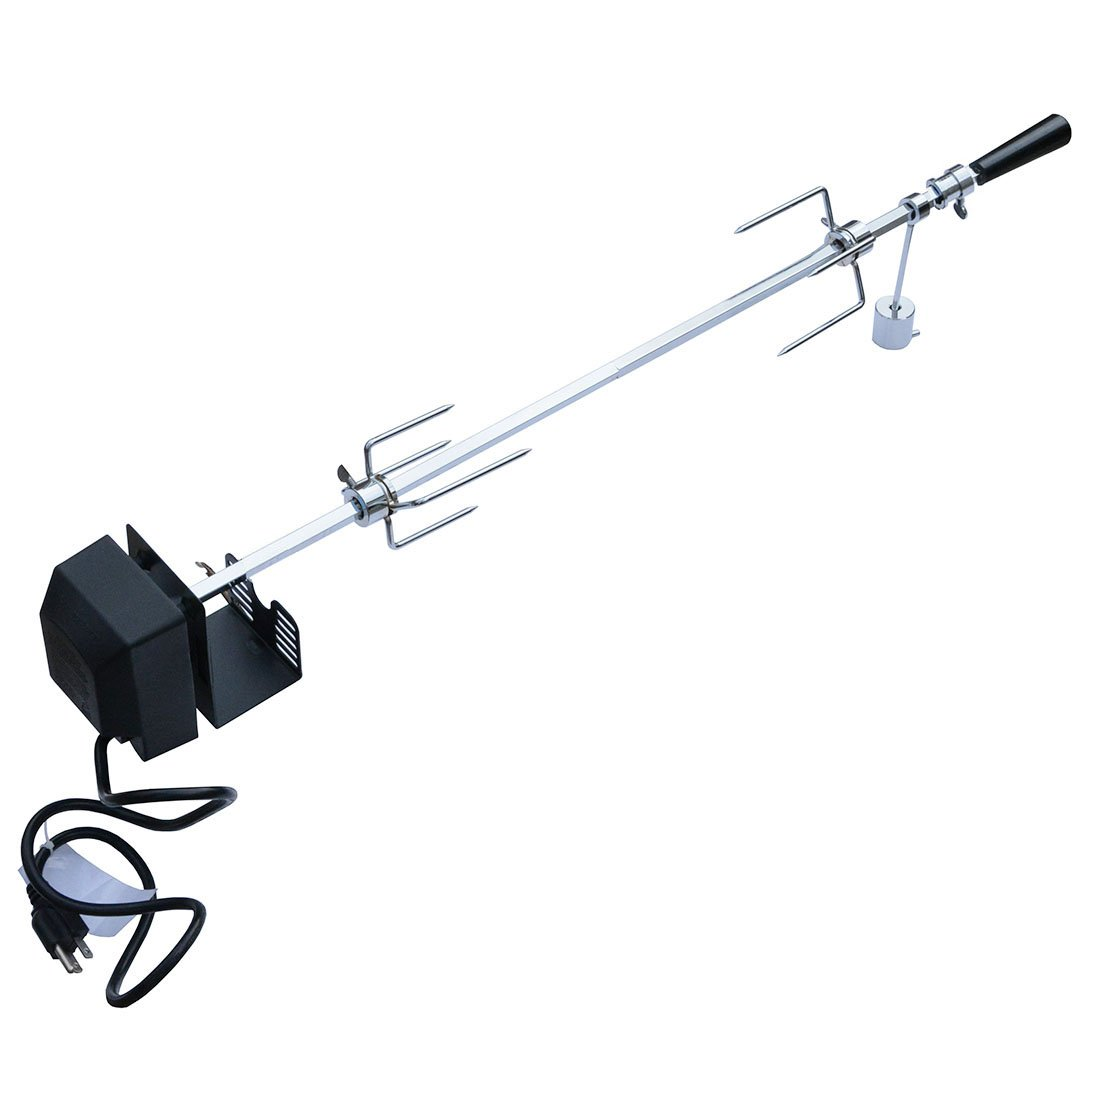 Onlyfire 6020 Universal Rotisserie Kit for Use with Most 4- and 5- Burner Grills (Excluding Weber Gas Grill), Square Spit Rod 41 1/2'', Electric Motor 110V